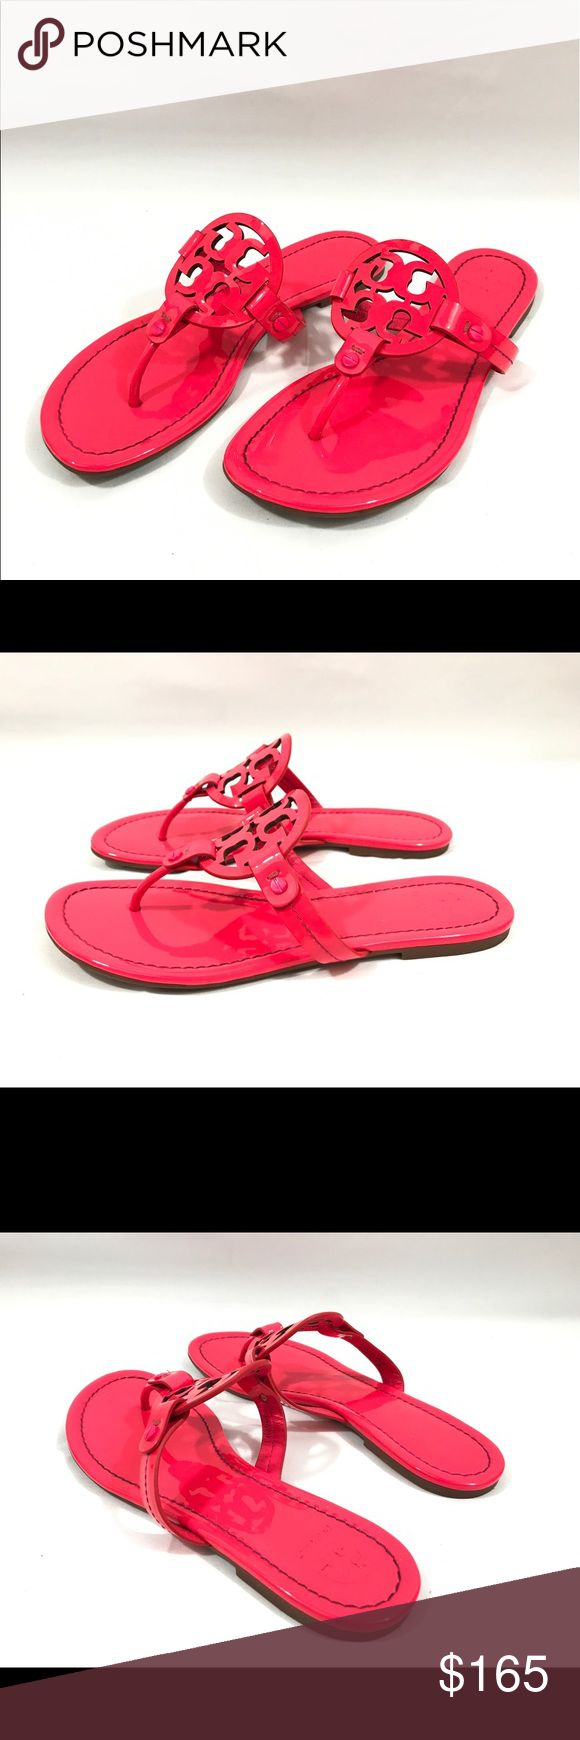 Tory Burch Miller Flip Flop Great condition, Fluo Fuchsia color.🚫trade Tory Burch Shoes Sandals